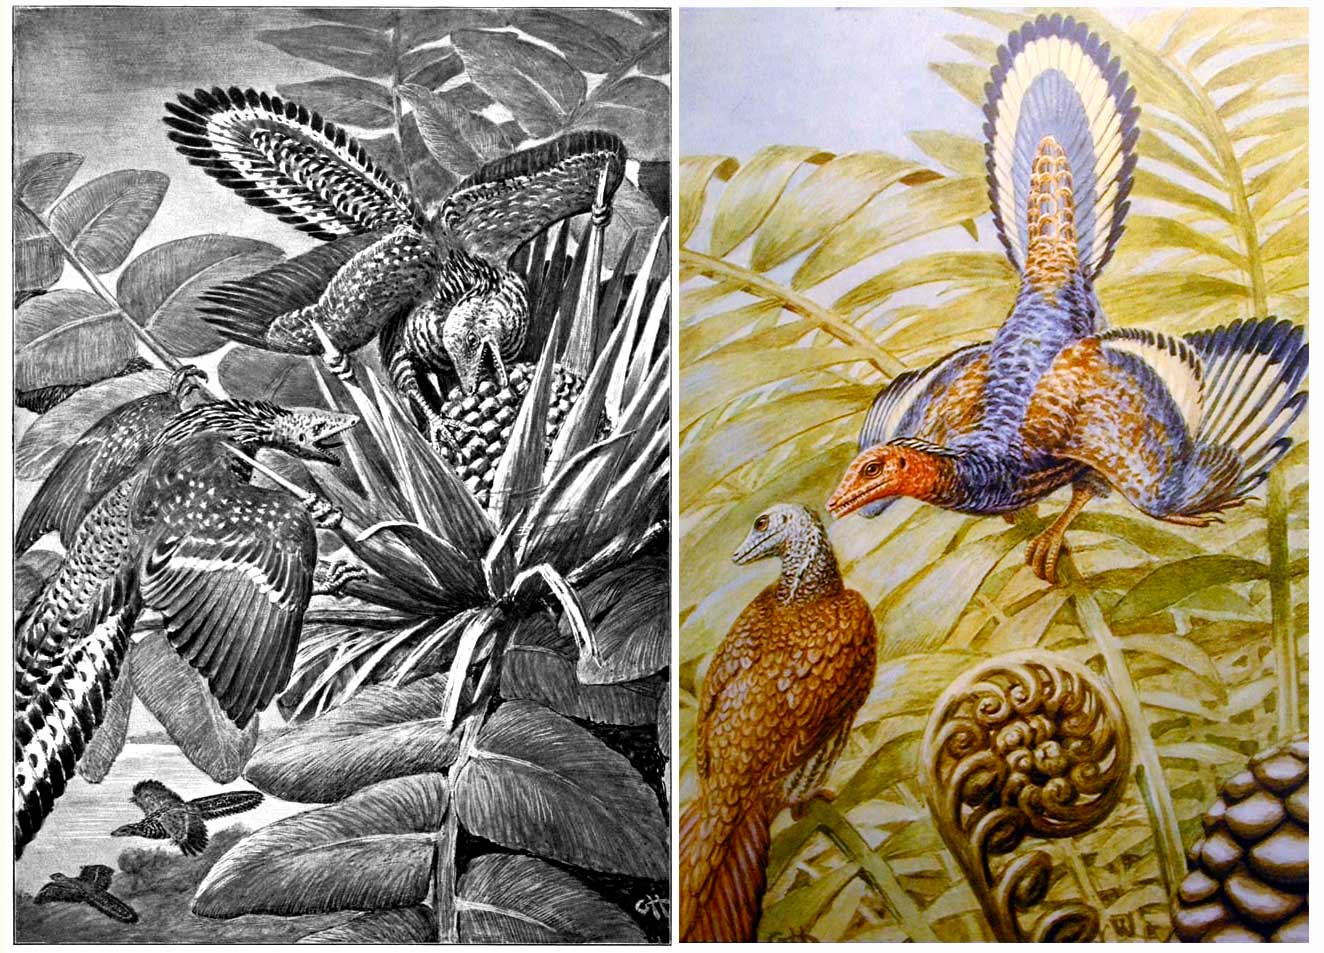 Heilmann's Archaeopteryxes from 1912 (left) and 1926 (right). Click to enlarge.